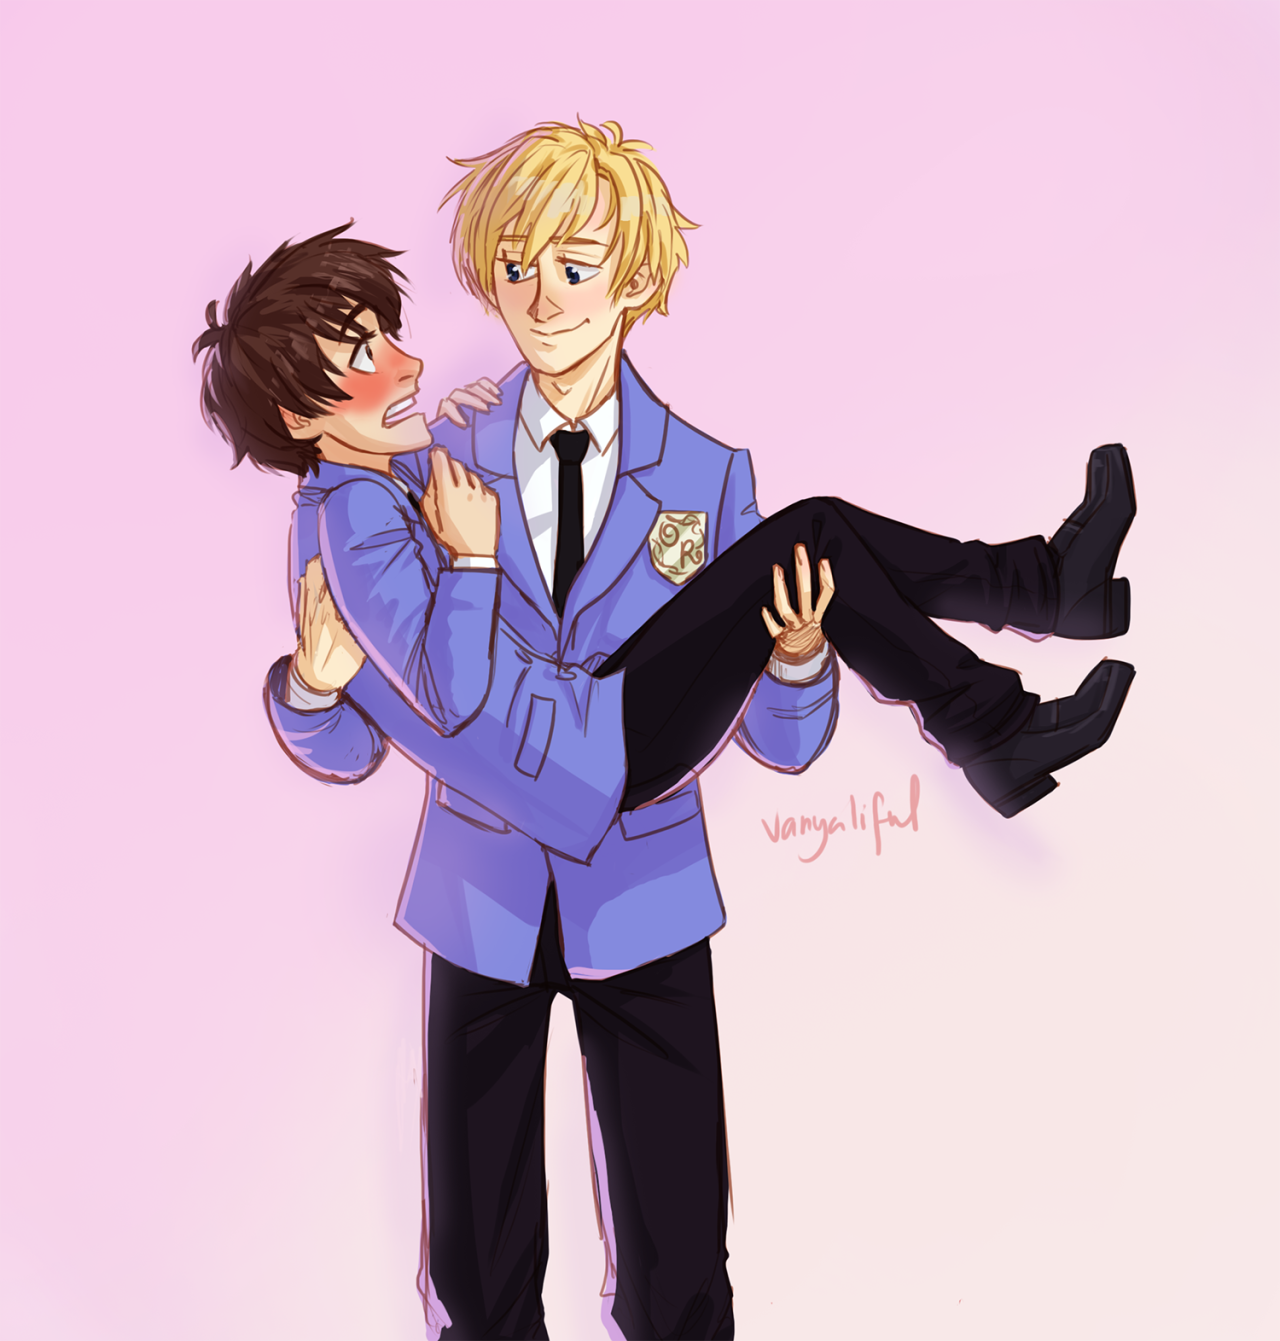 Vanyaliful Ohshc He Always Wanted To Carry Her Bridal Style After